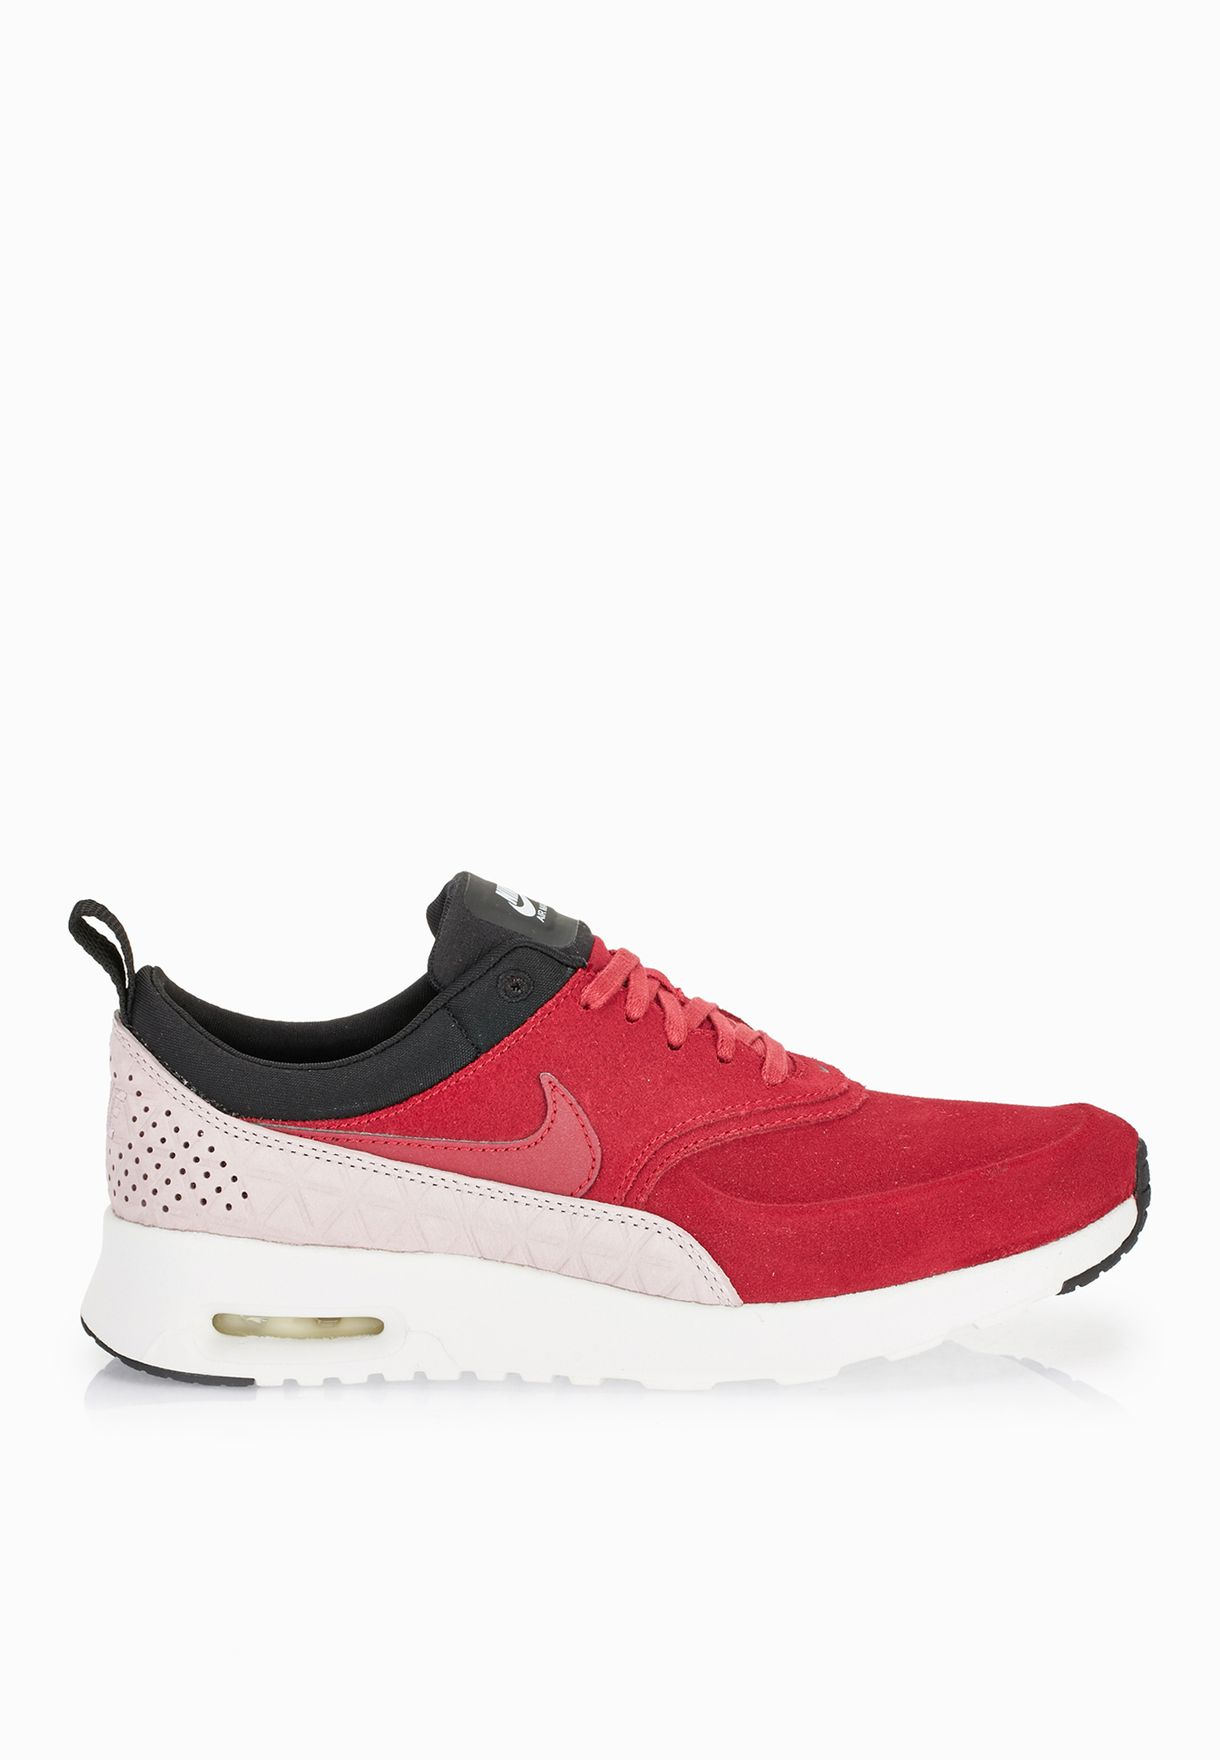 Shop Nike burgundy Air Max Thea Prm Lth 845062-600 for Women in ... e2e0715c7